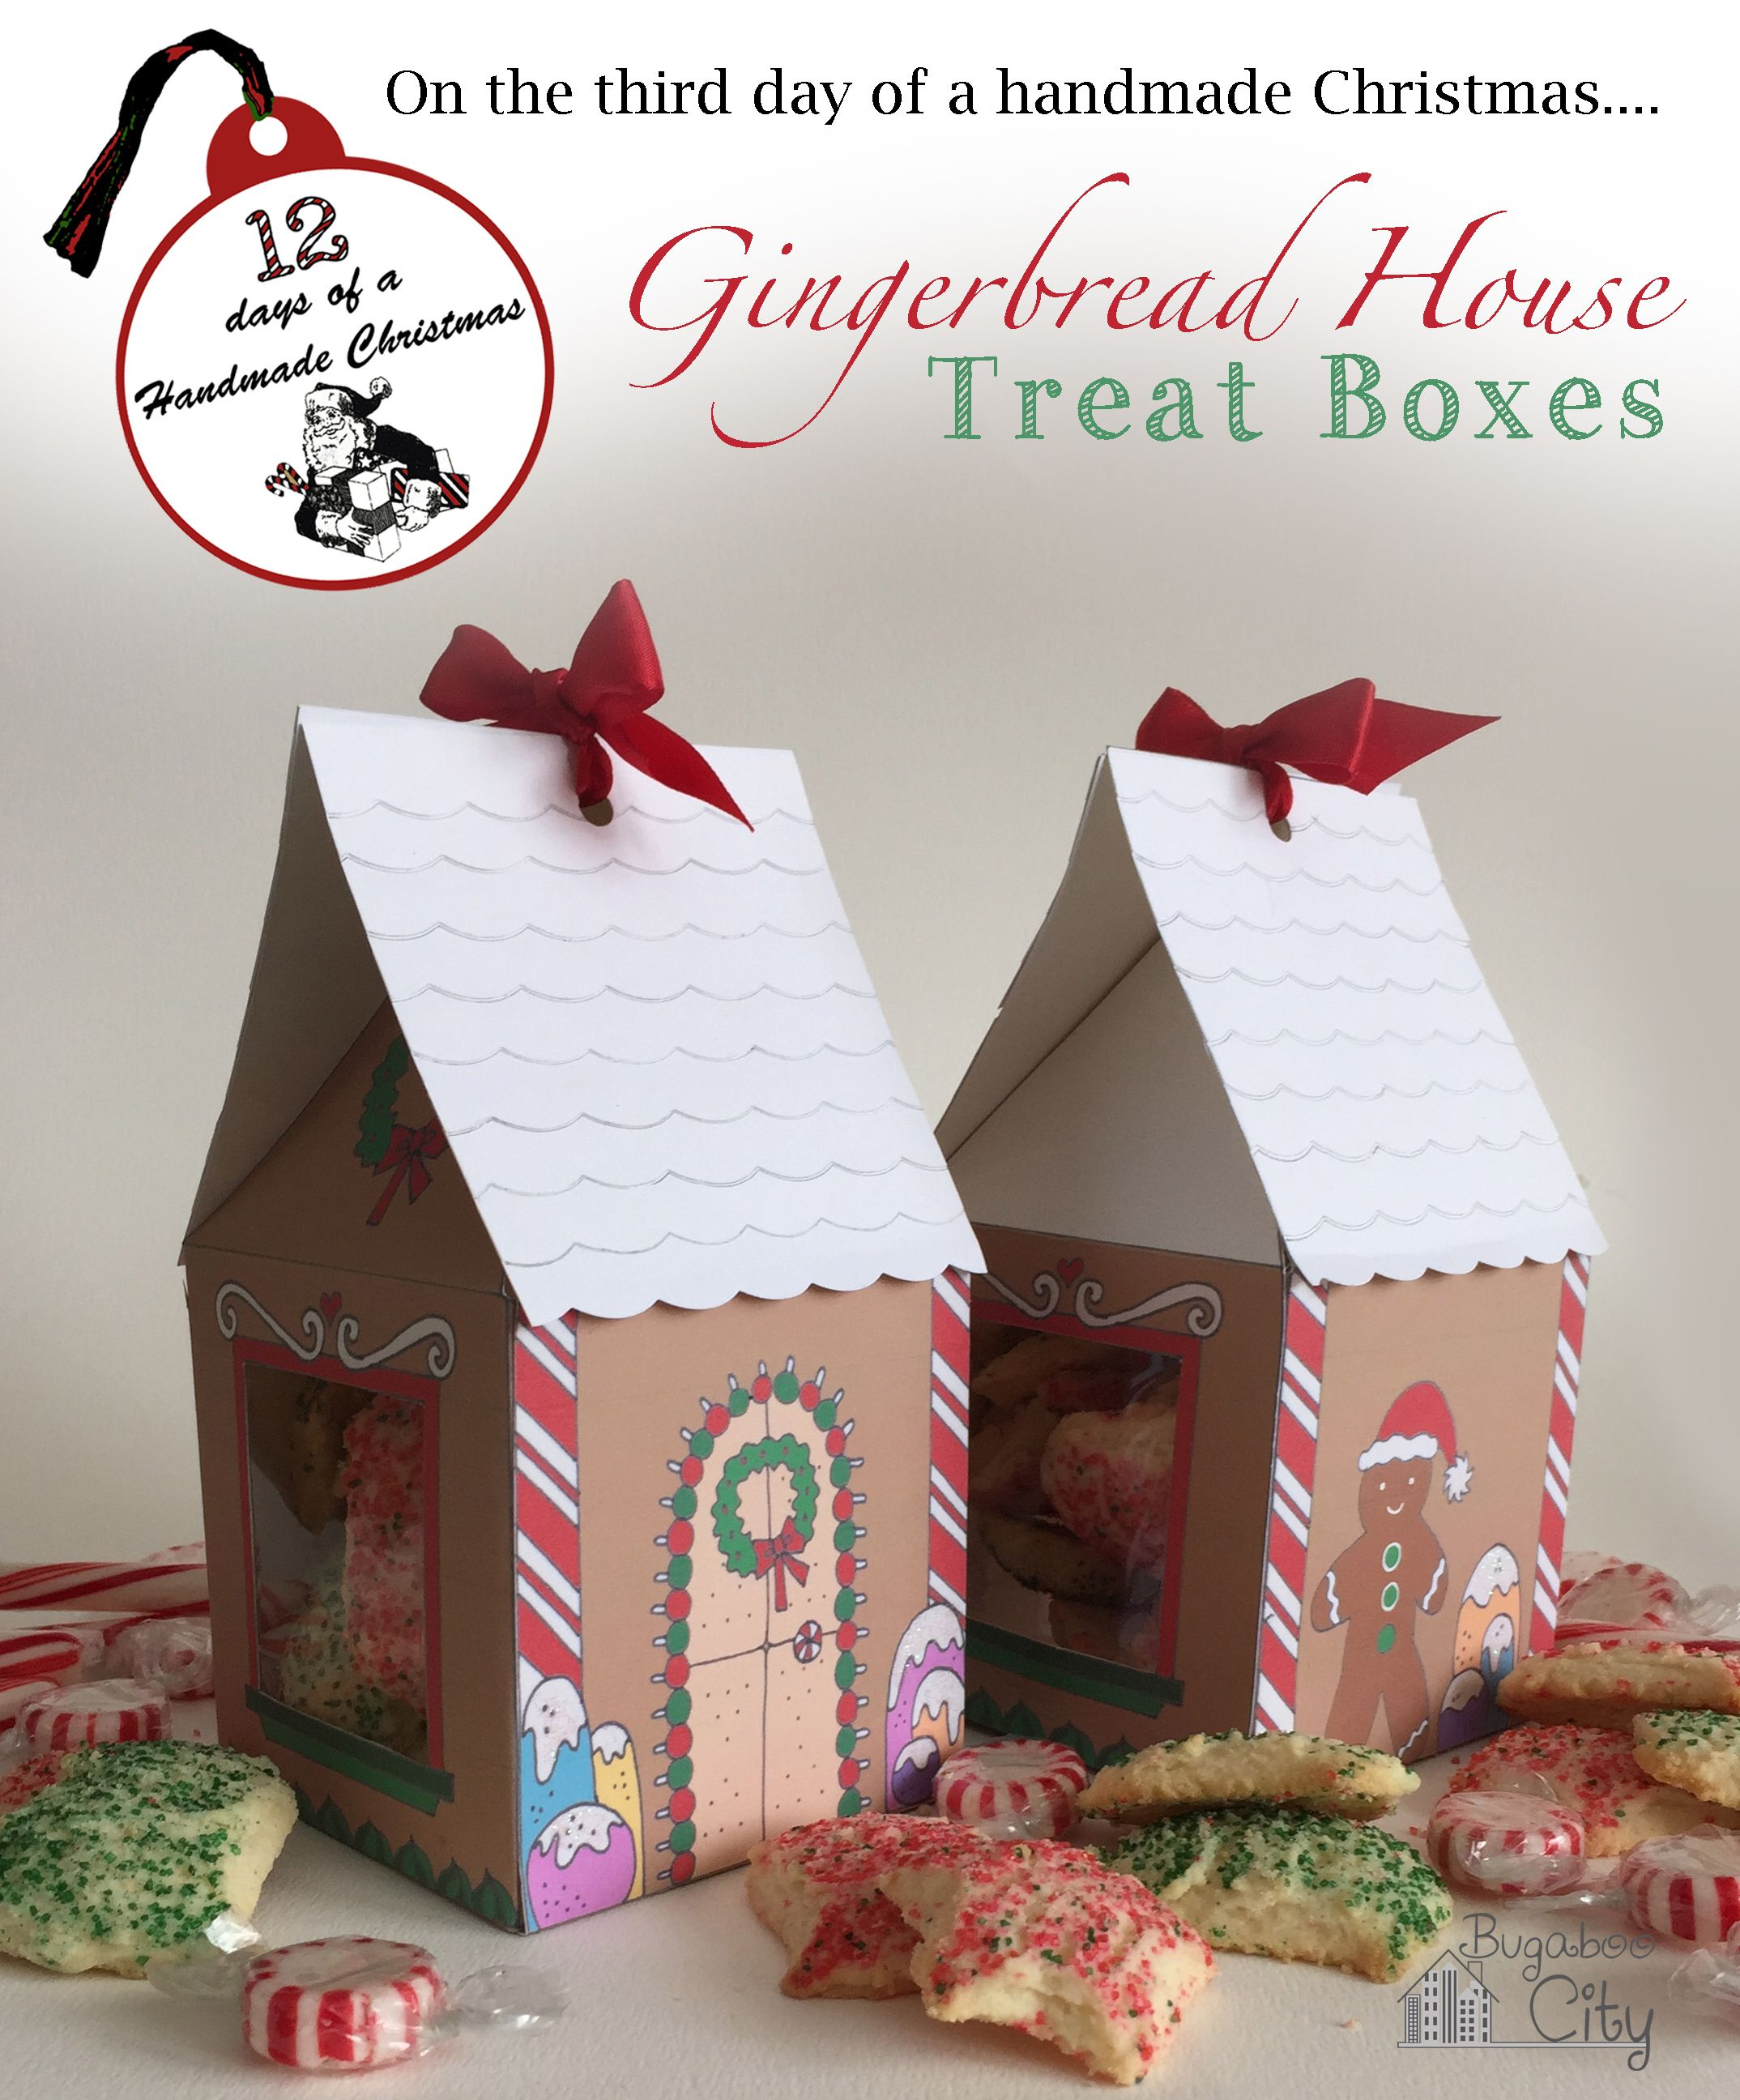 Gingerbread house free printables - Free Printable Gingerbread House Treat Box